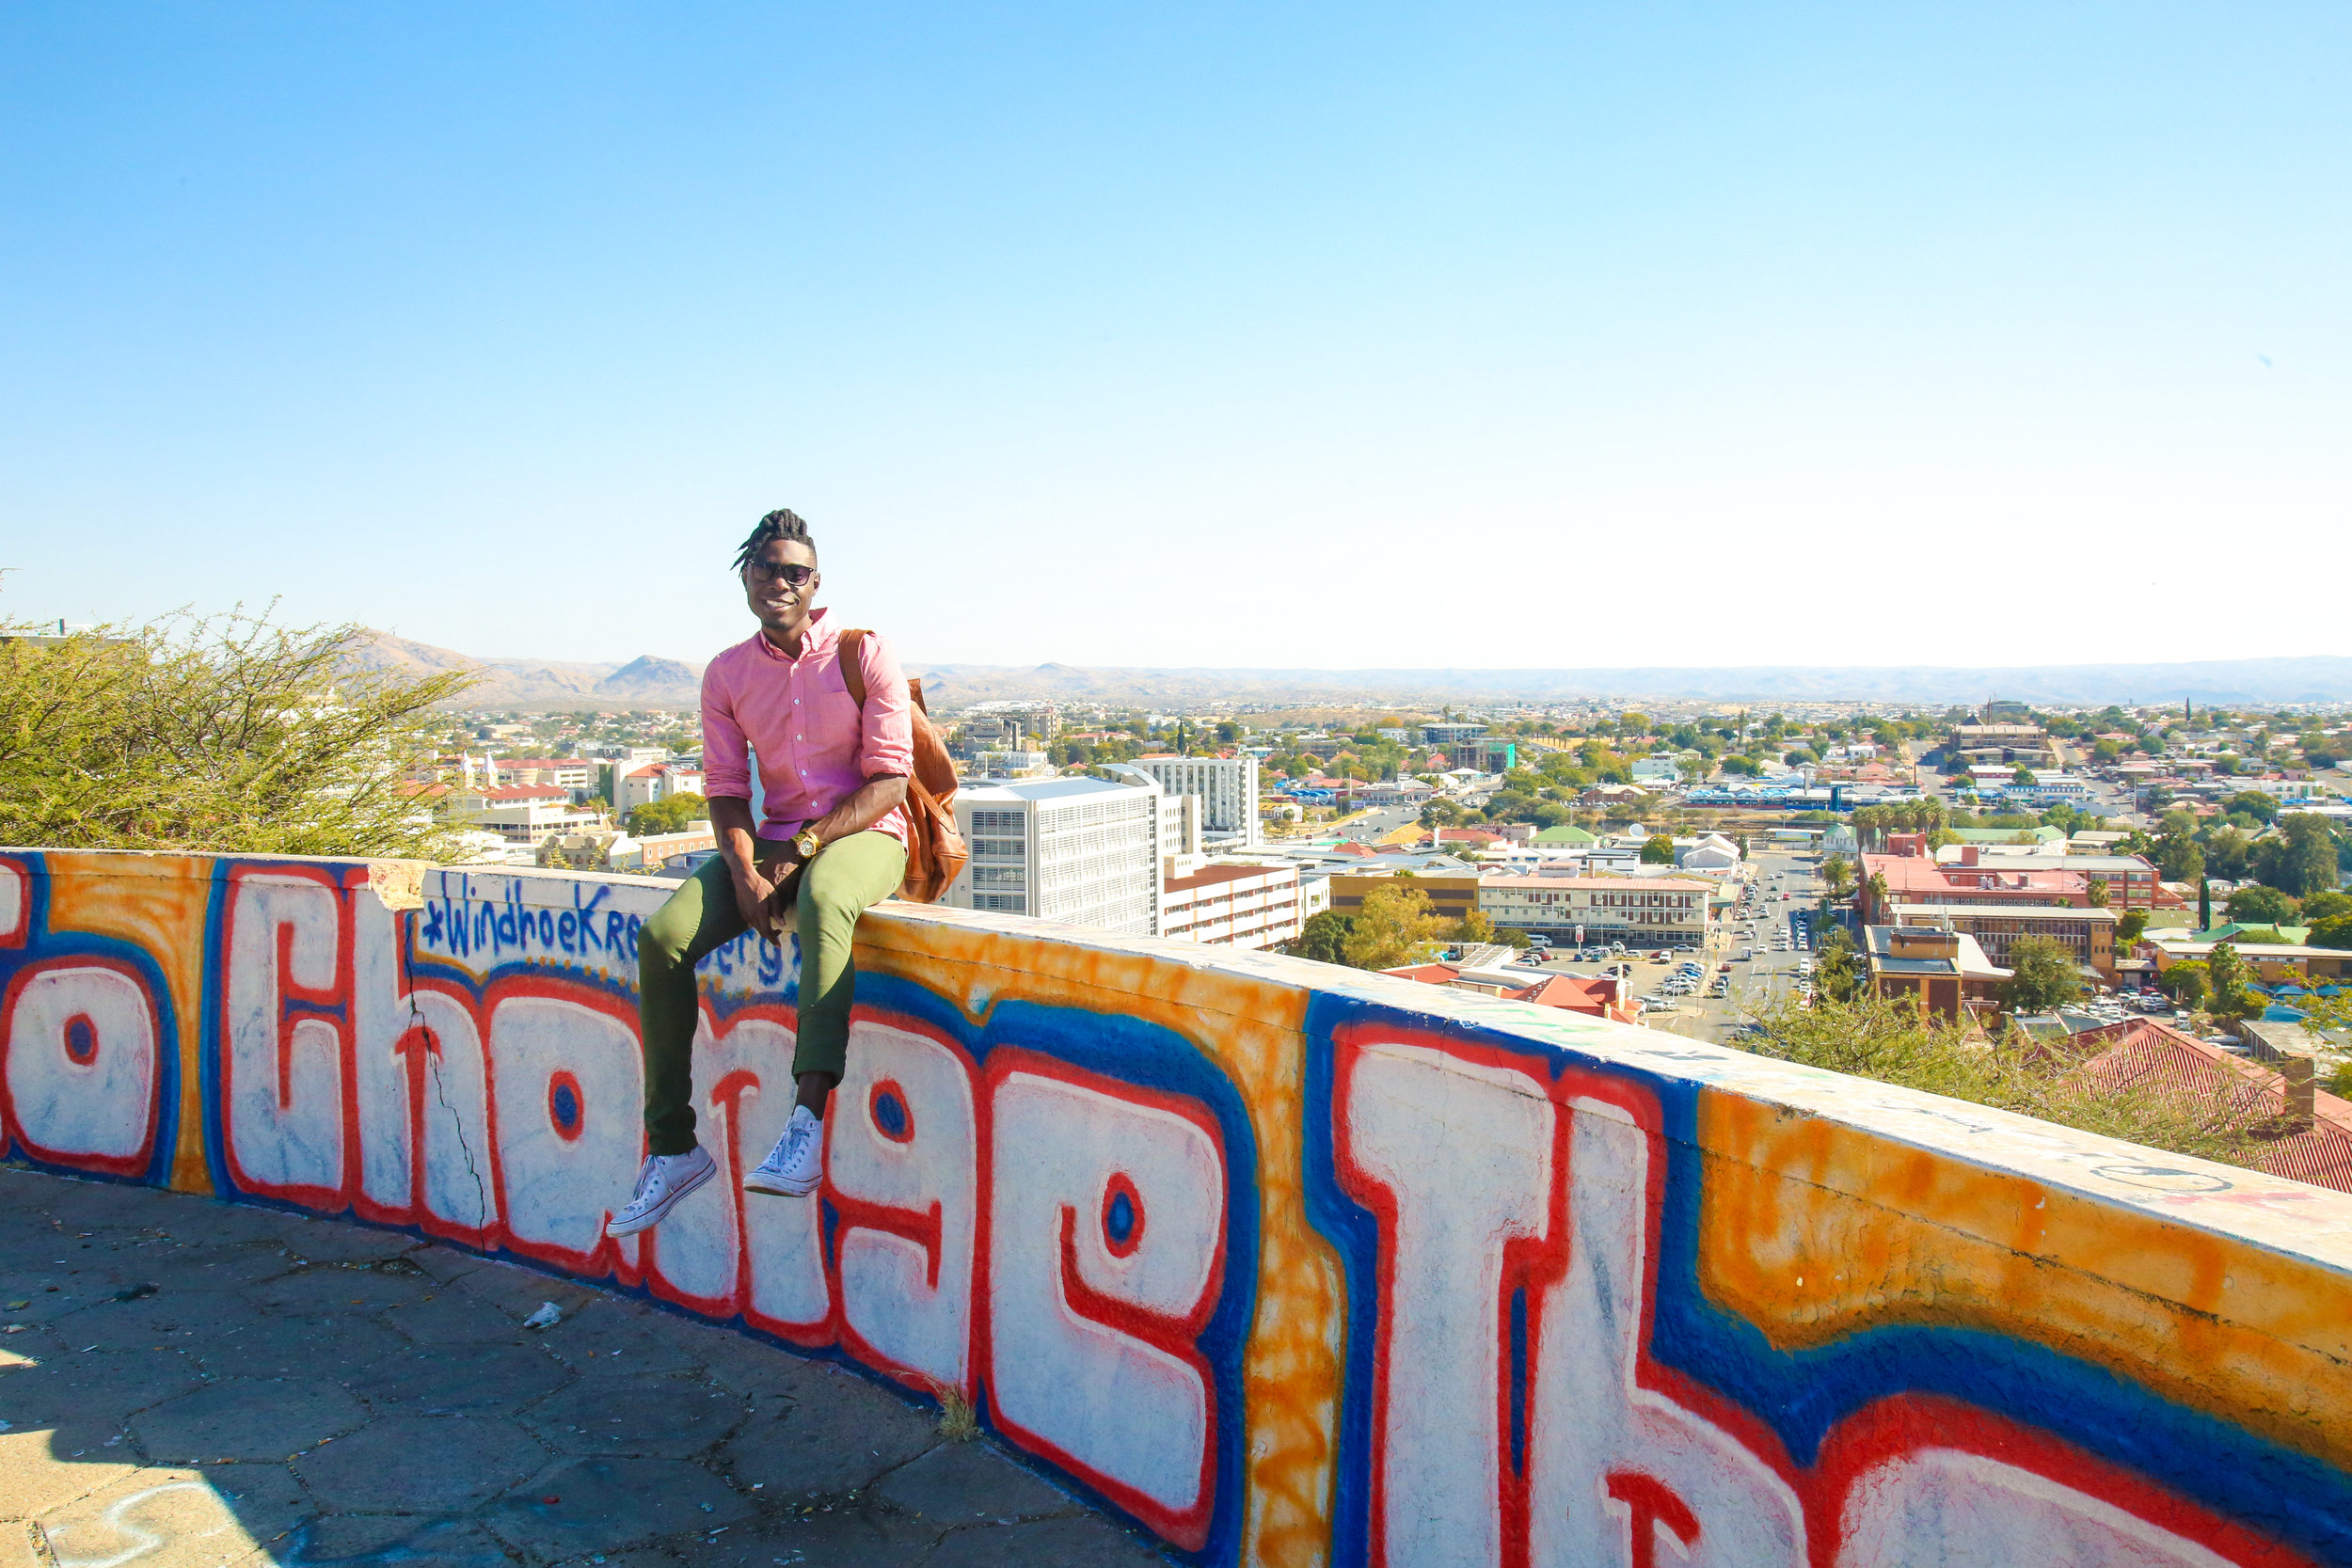 Downtown Windhoek in the background  Image by  Kevin Perestrelo